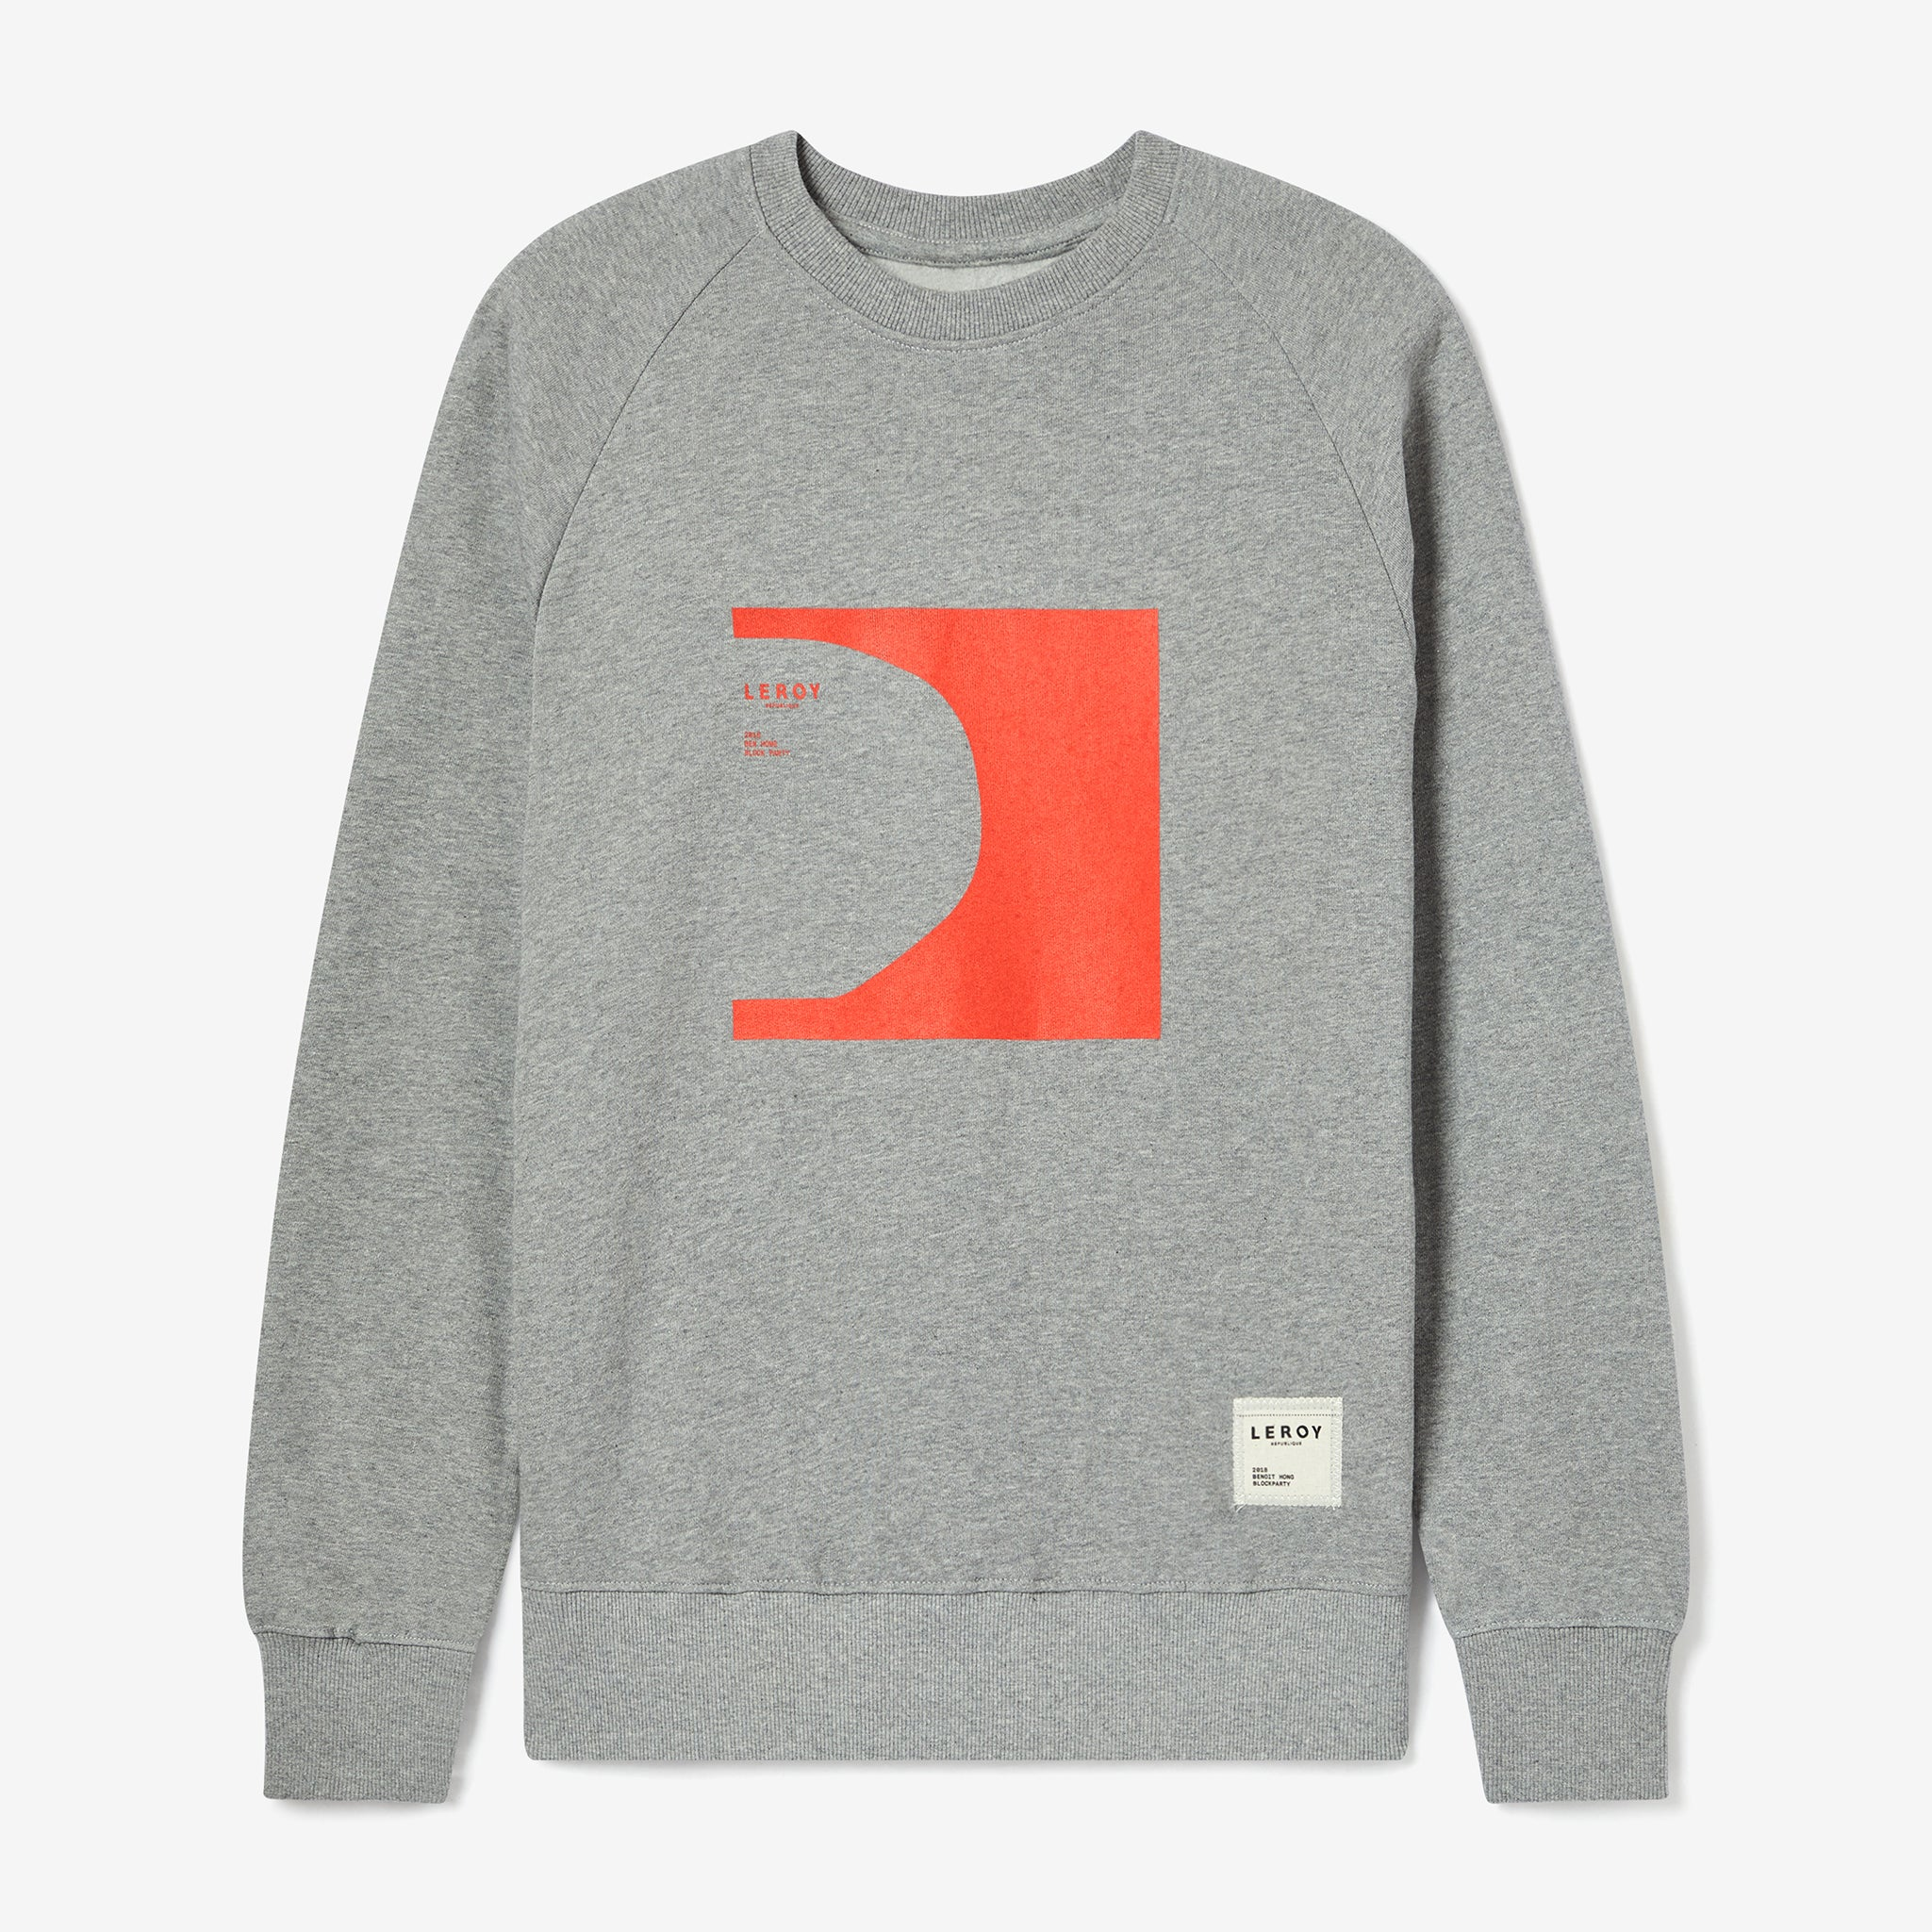 Halfpipe bright red crew neck